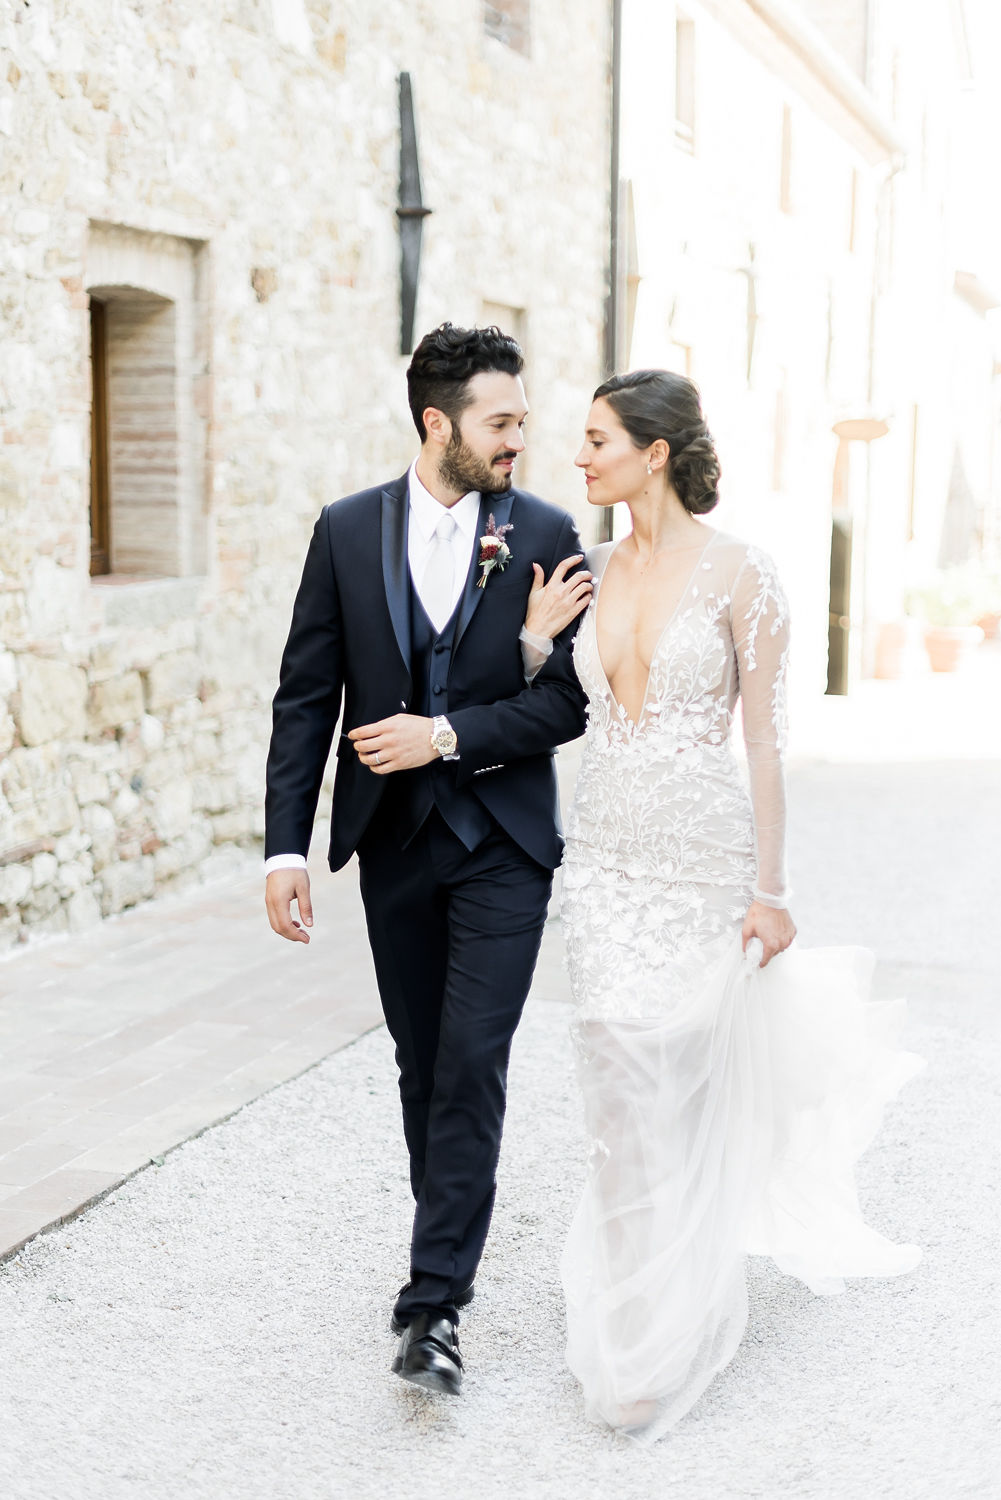 Destination weddings stationery tips with couple walking through village in Italy